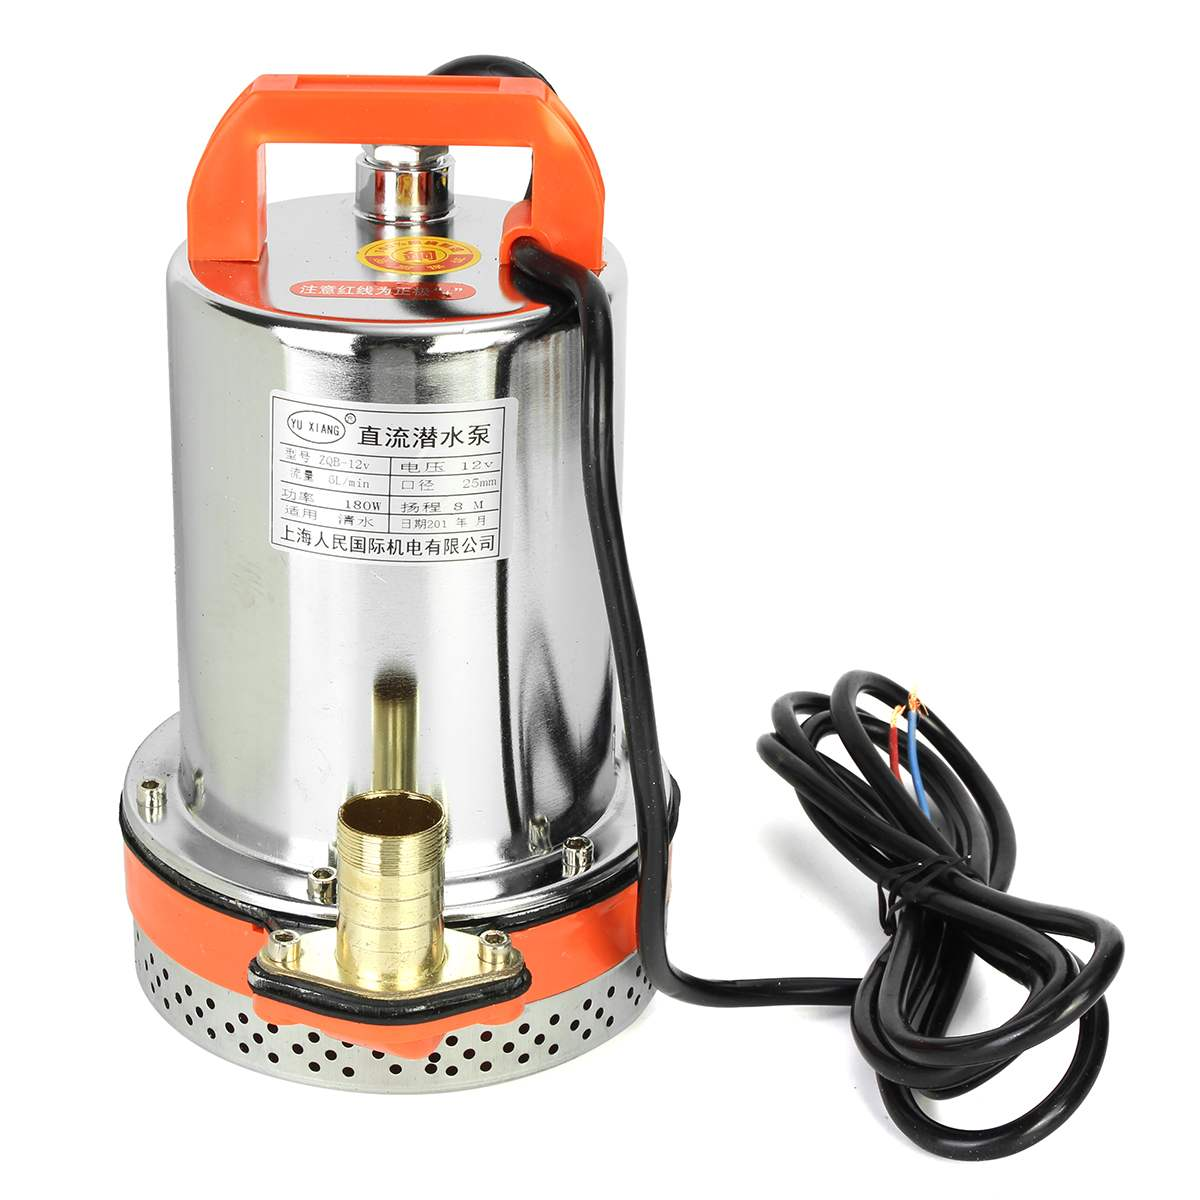 DC 12V 50L/M Submersible Water Pump Well Pump Swimming Pool Pond Flood Drain Car Boat Pumps Water Cleaning Tools AccessoriesDC 12V 50L/M Submersible Water Pump Well Pump Swimming Pool Pond Flood Drain Car Boat Pumps Water Cleaning Tools Accessories